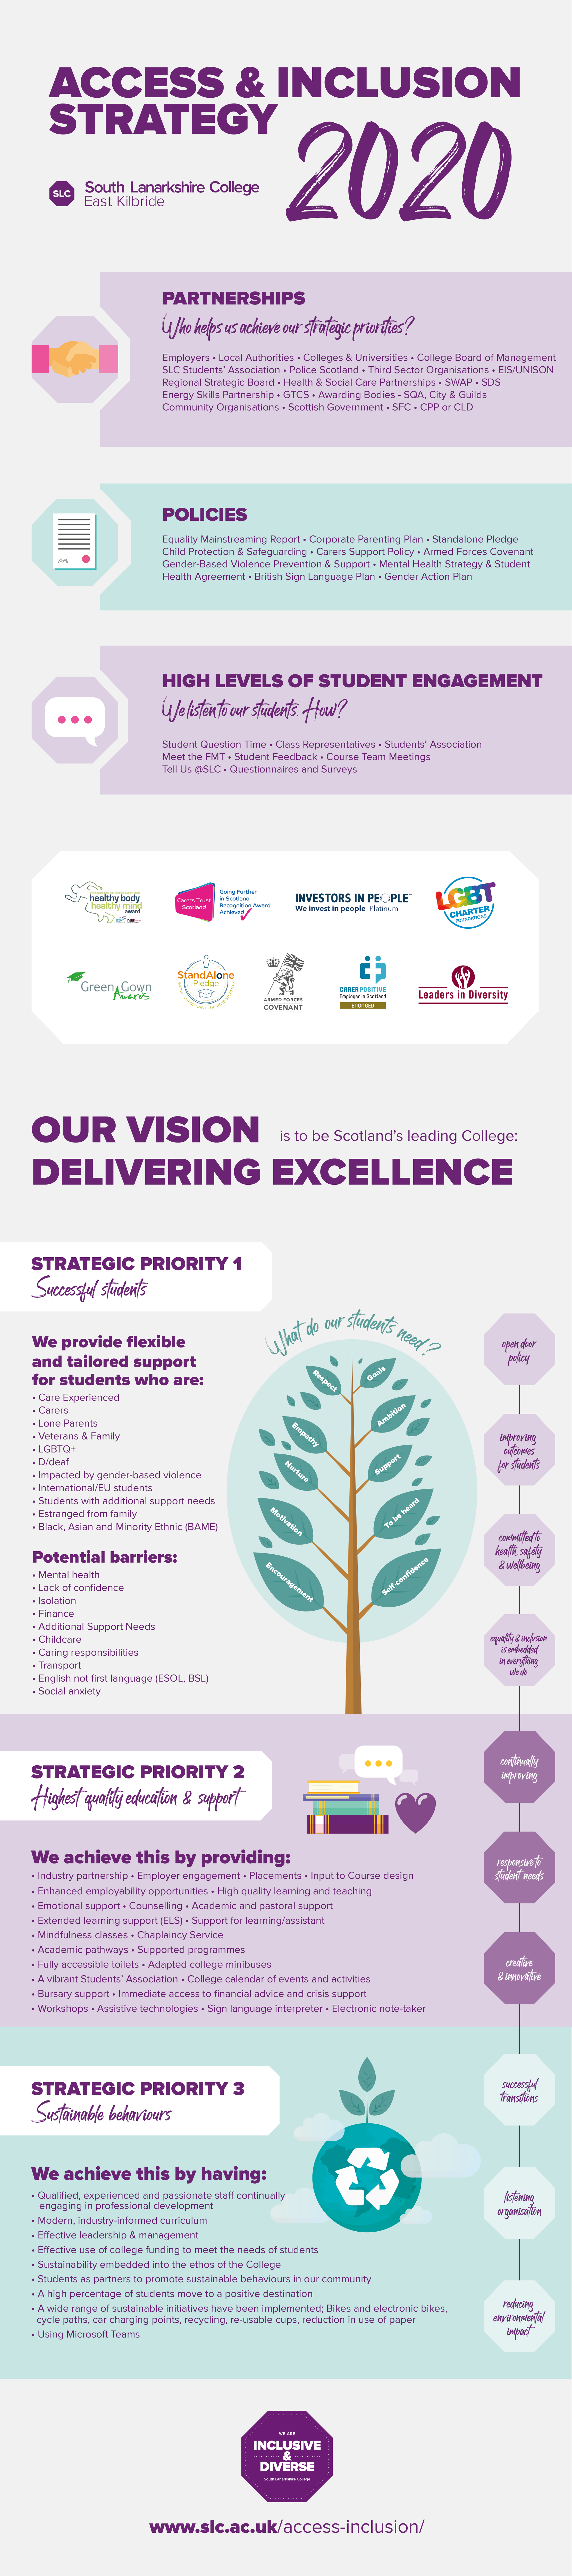 Access and Inclusion Strategy Infographic